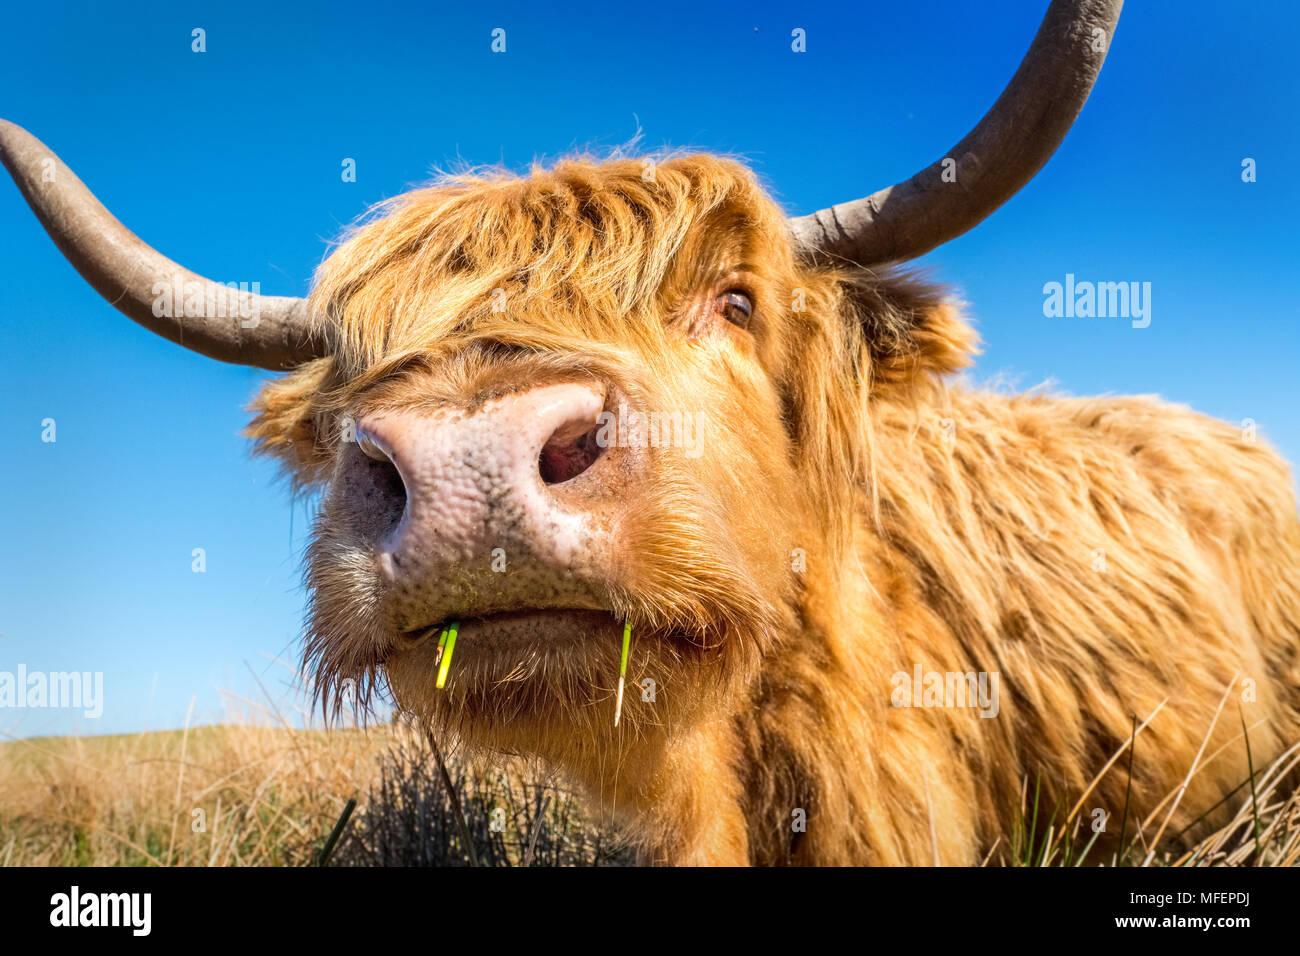 Highland cow / le pâturage sur les landes Photo Stock